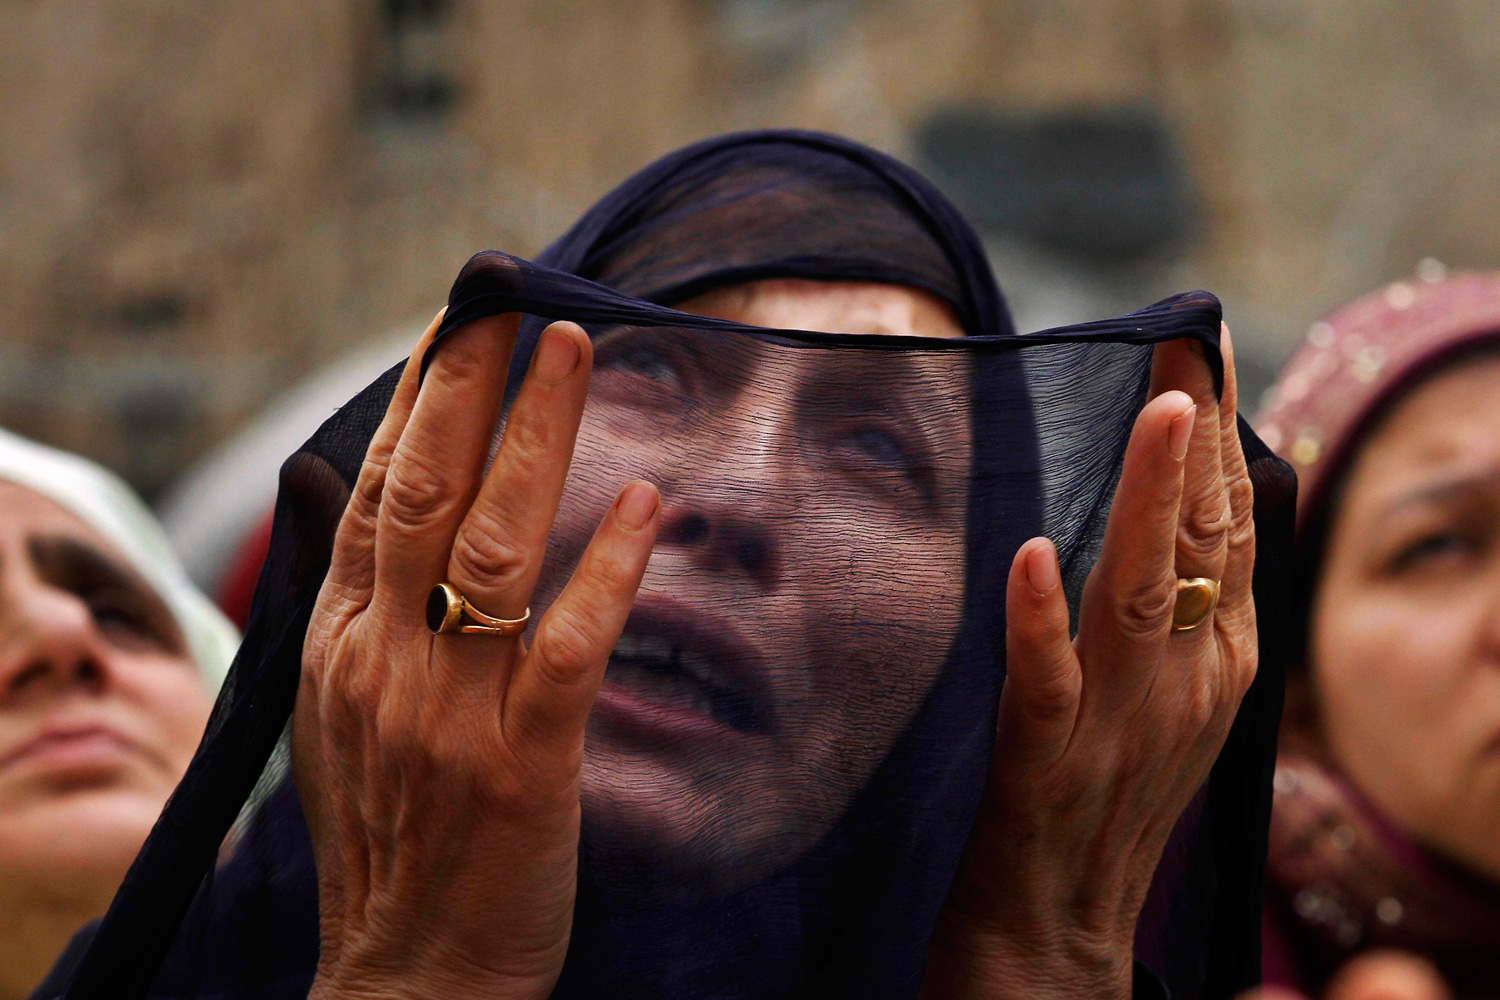 May 14, 2012. A Kashmiri Muslim woman prays as a head priest, unseen, displays a relic, believed to be a hair from the beard of the Prophet Mohammad, during special prayers on the death anniversary of Abu Bakr Siddiq, the first Caliph of Islam, at Hazratbal Shrine on the outskirts of Srinagar, India.